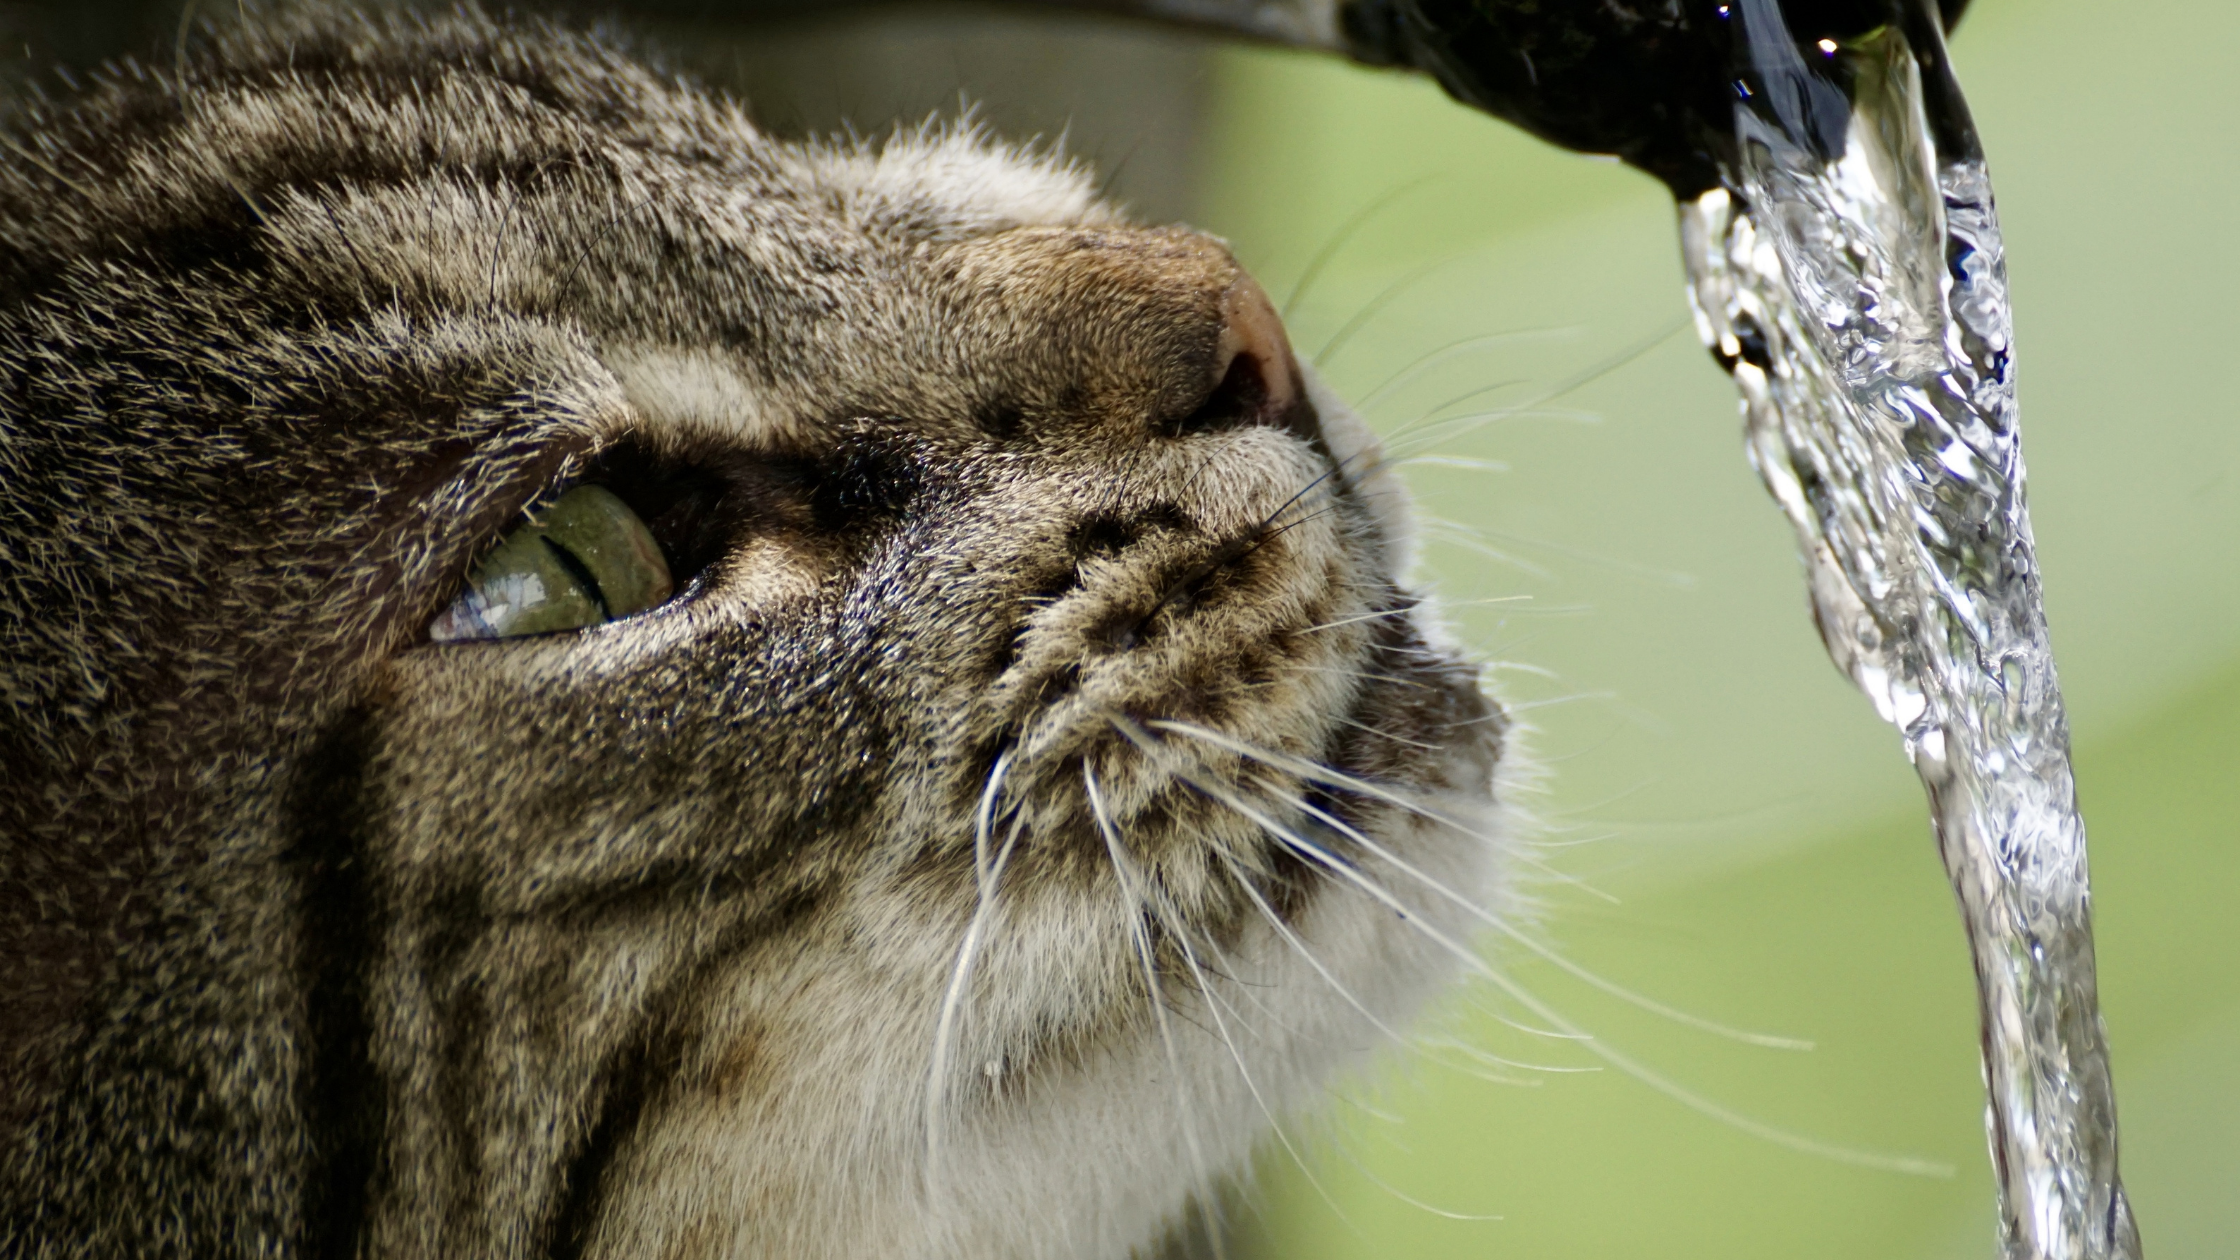 What causes dehydration in cats